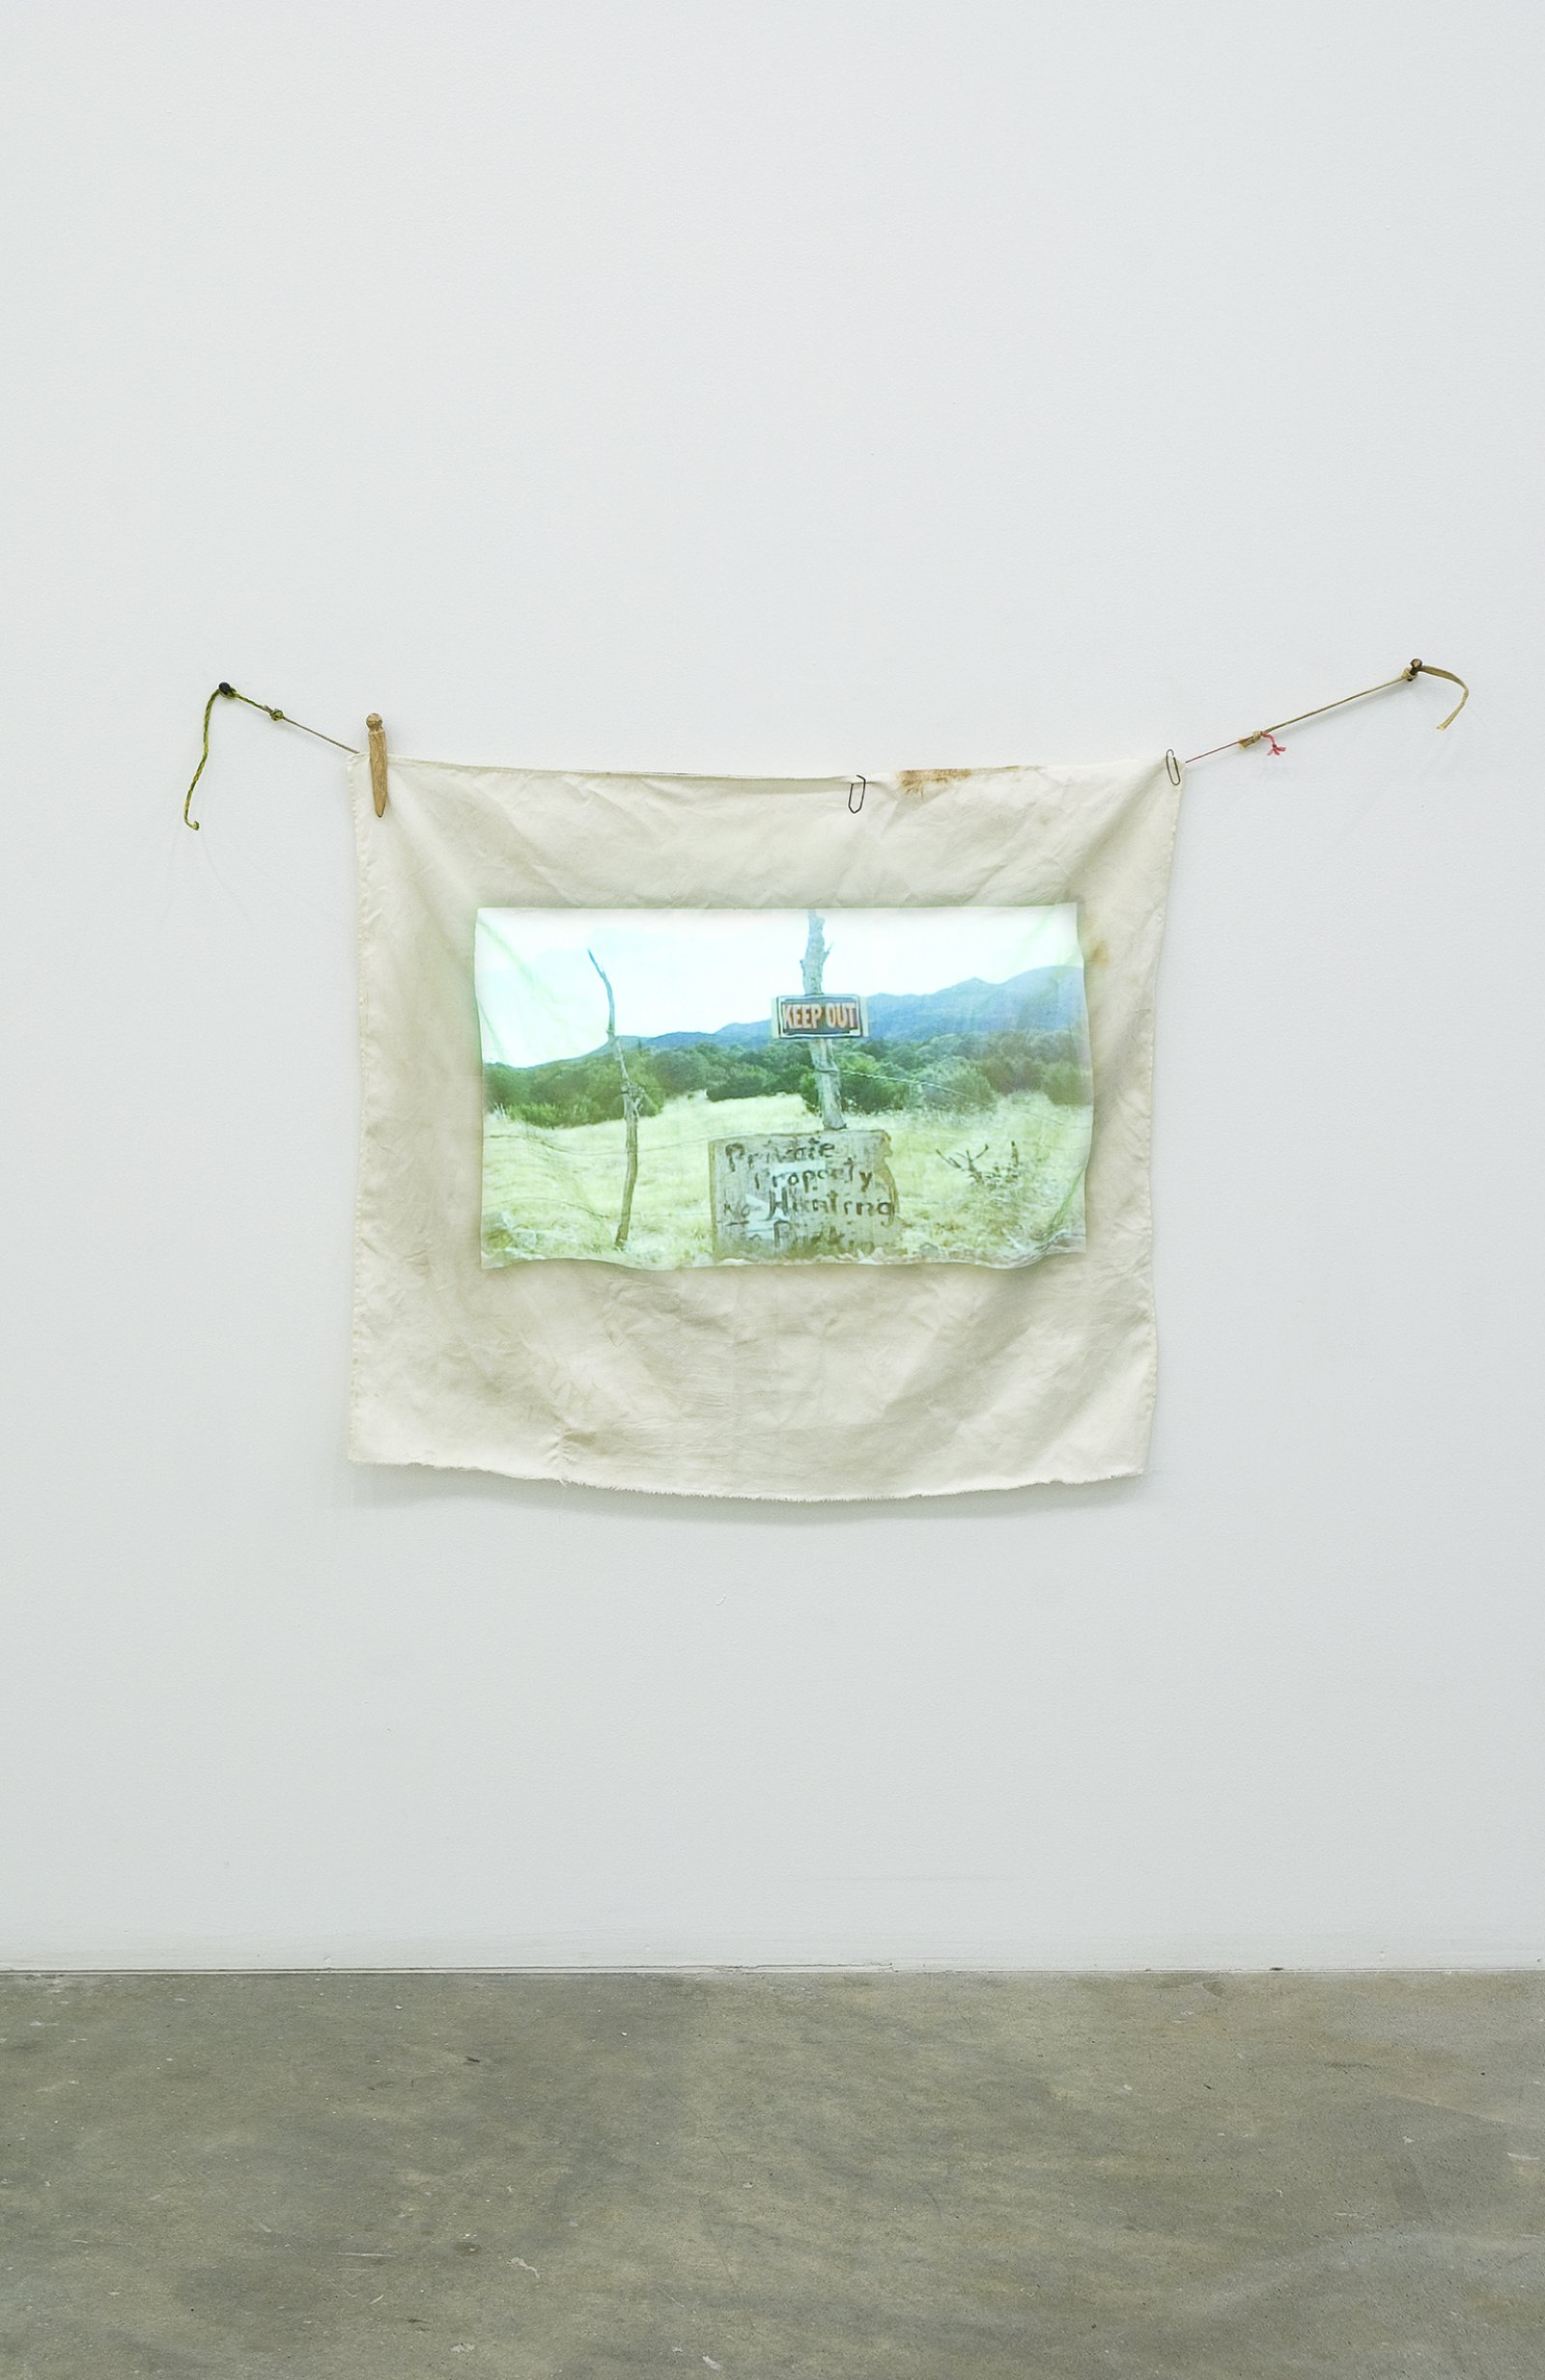 Gareth Moore, Travel Without Movement from Uncertain Pilgrimage, 2006–2007, dvd projection, cloth projection screen, clothespins, paperclips, string, 32 x 41 in. (80 x 105 cm), 12 minutes, 10 seconds by Ashes Withyman